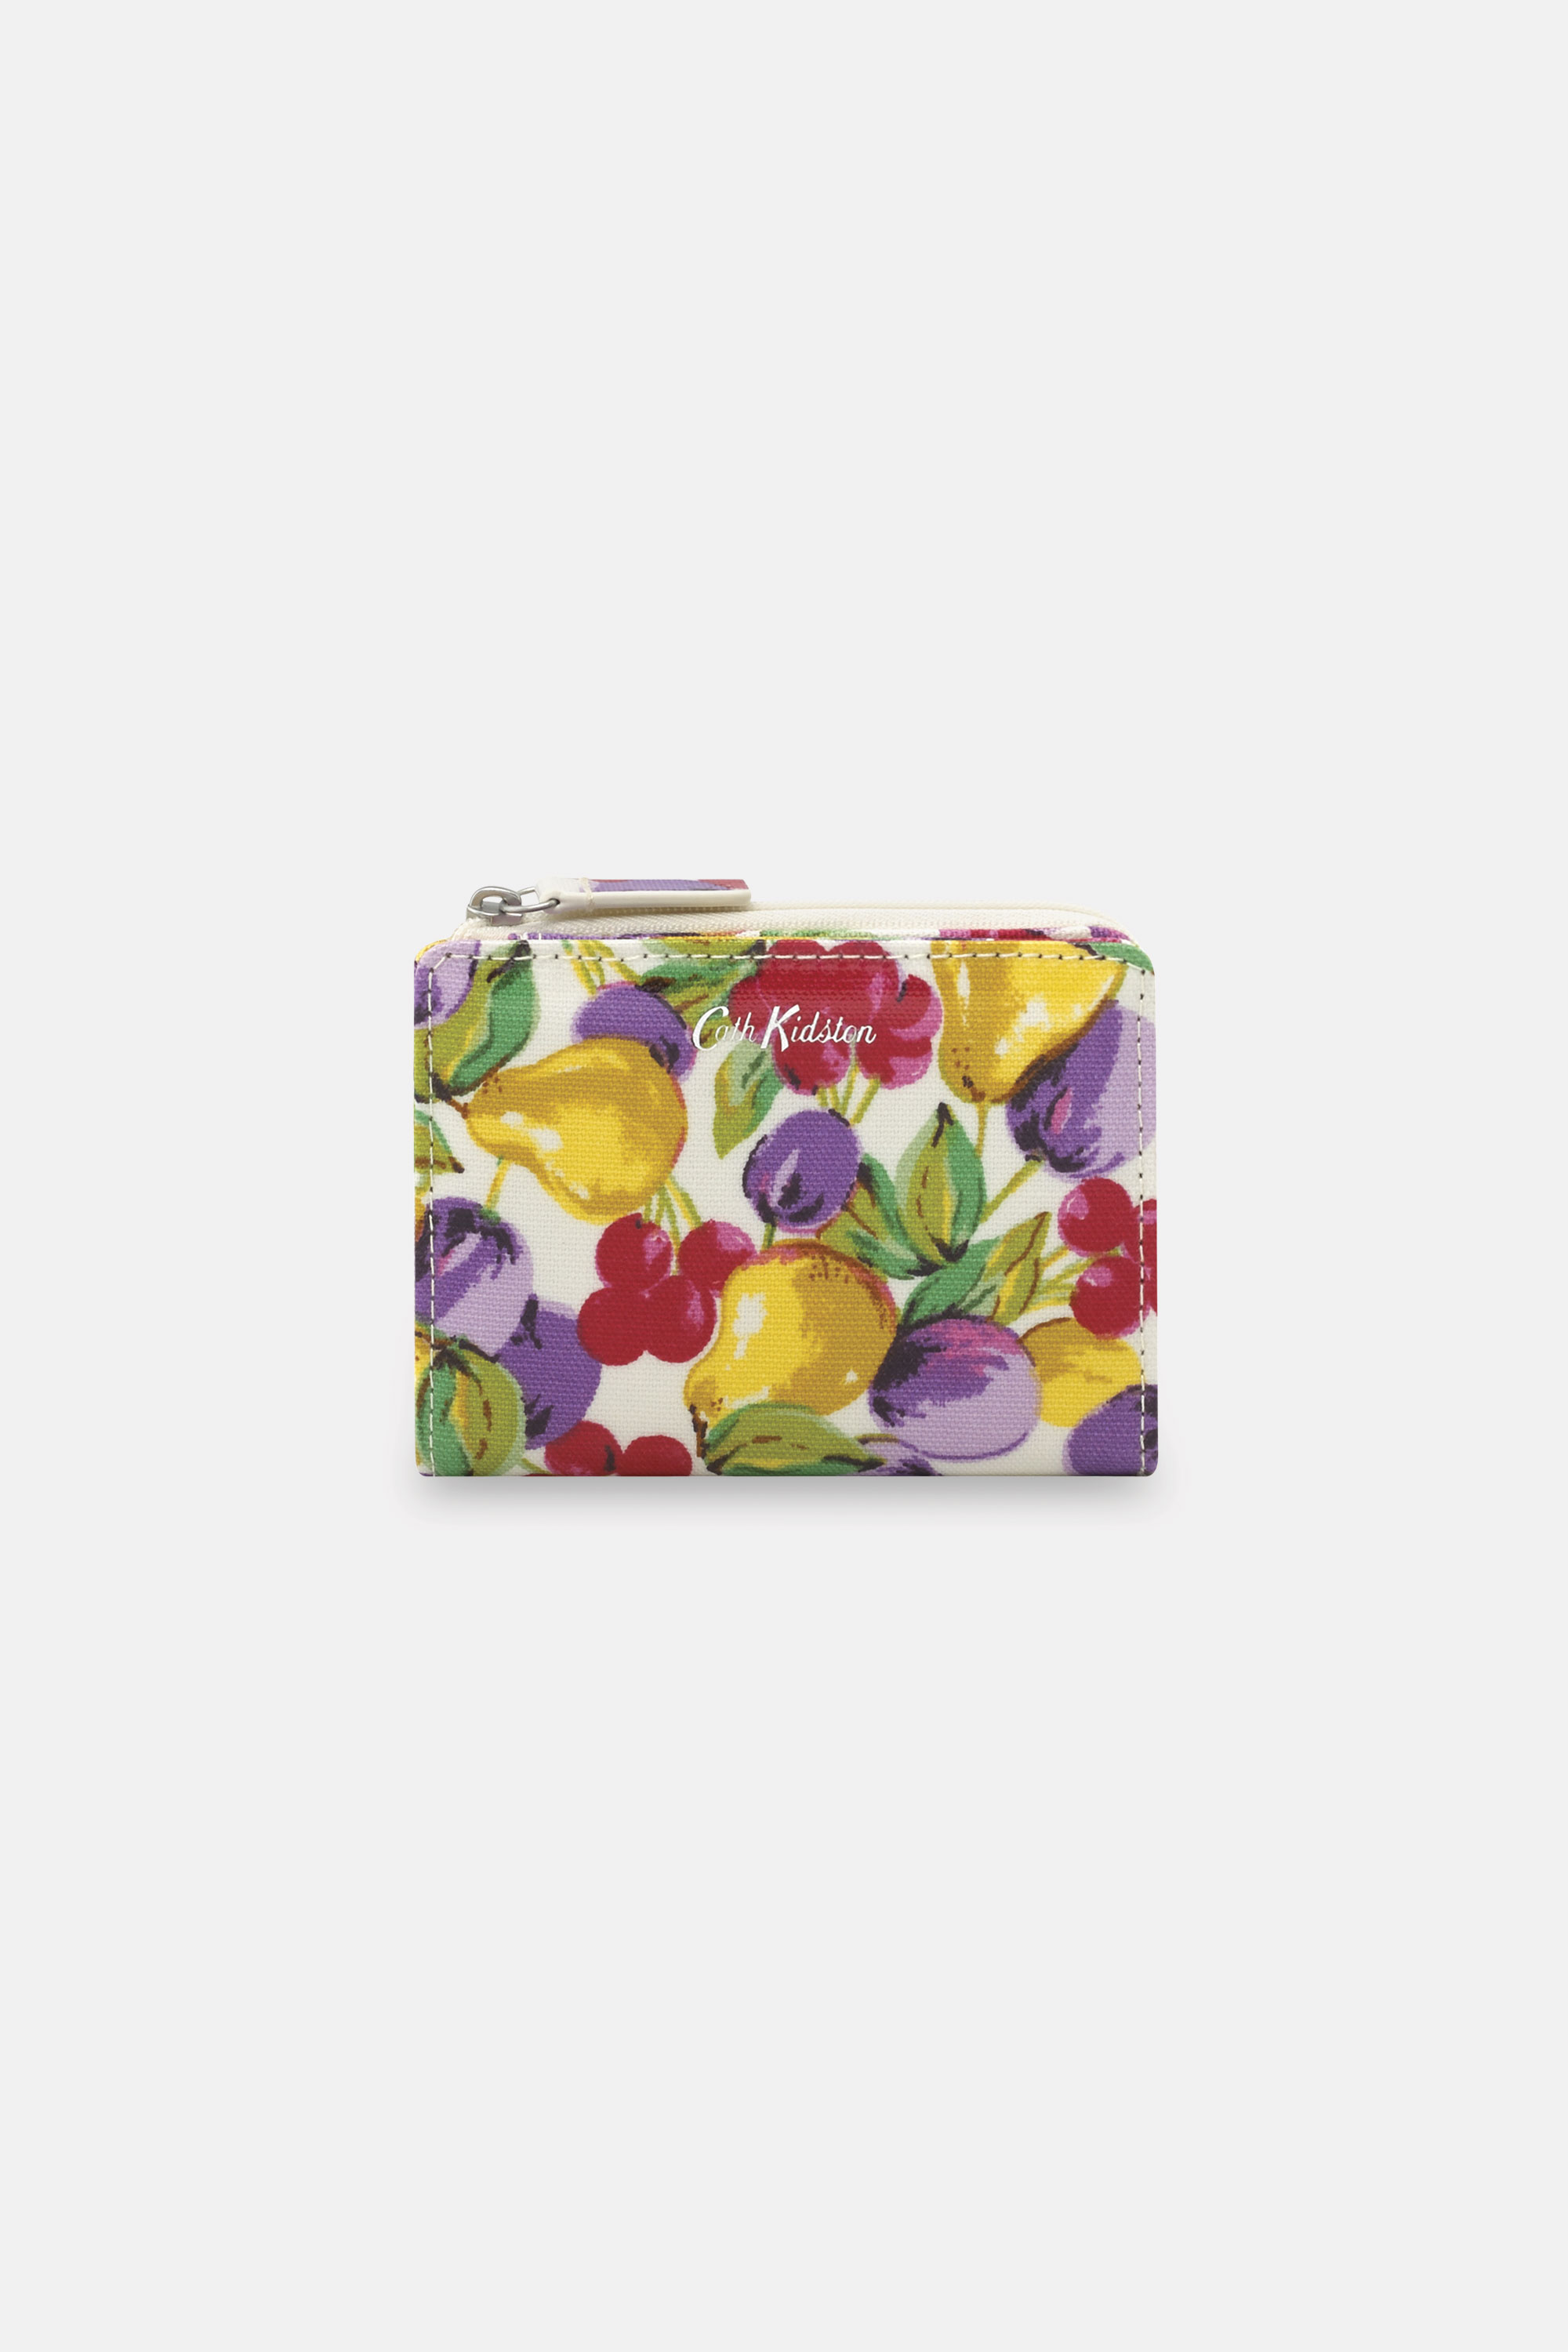 Cath Kidston Small Painted Fruit Slim Pocket Purse in Warm Cream